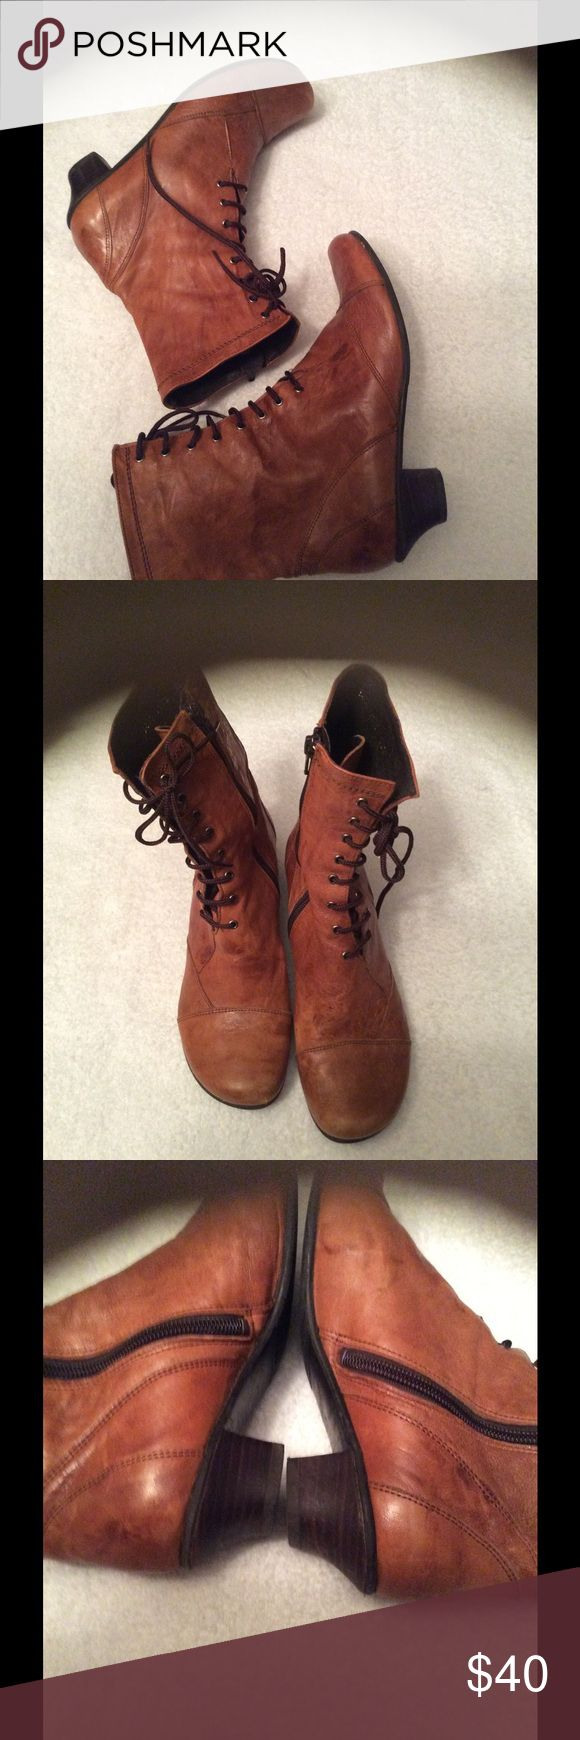 Fidji  leather boots Preloved leather granny style boots has some scuffs and stains I believe can be removed the leather is super soft boots are still super cute kind of distressed fidji Shoes Ankle Boots & Booties